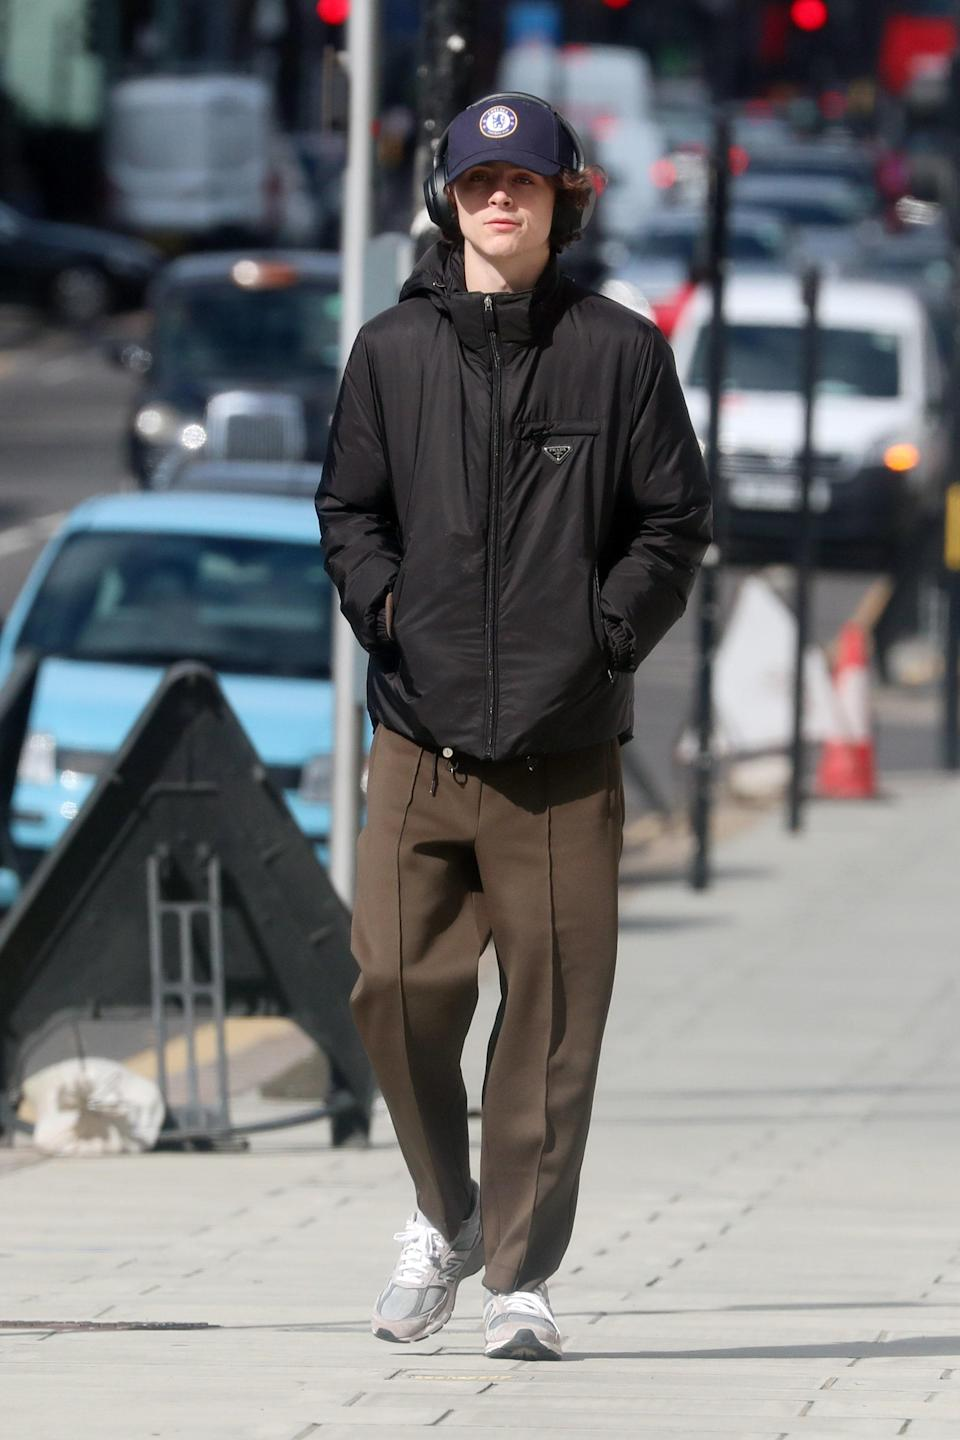 """<p>WHAT: A Prada jacket and New Balance sneakers</p> <p>WHERE: Walking in Notting Hill, London</p> <p>WHEN: March 16, 2020 </p> <p>WHY: In which Timothee Chalamet perfects the """"getting some air"""" fit. </p>"""